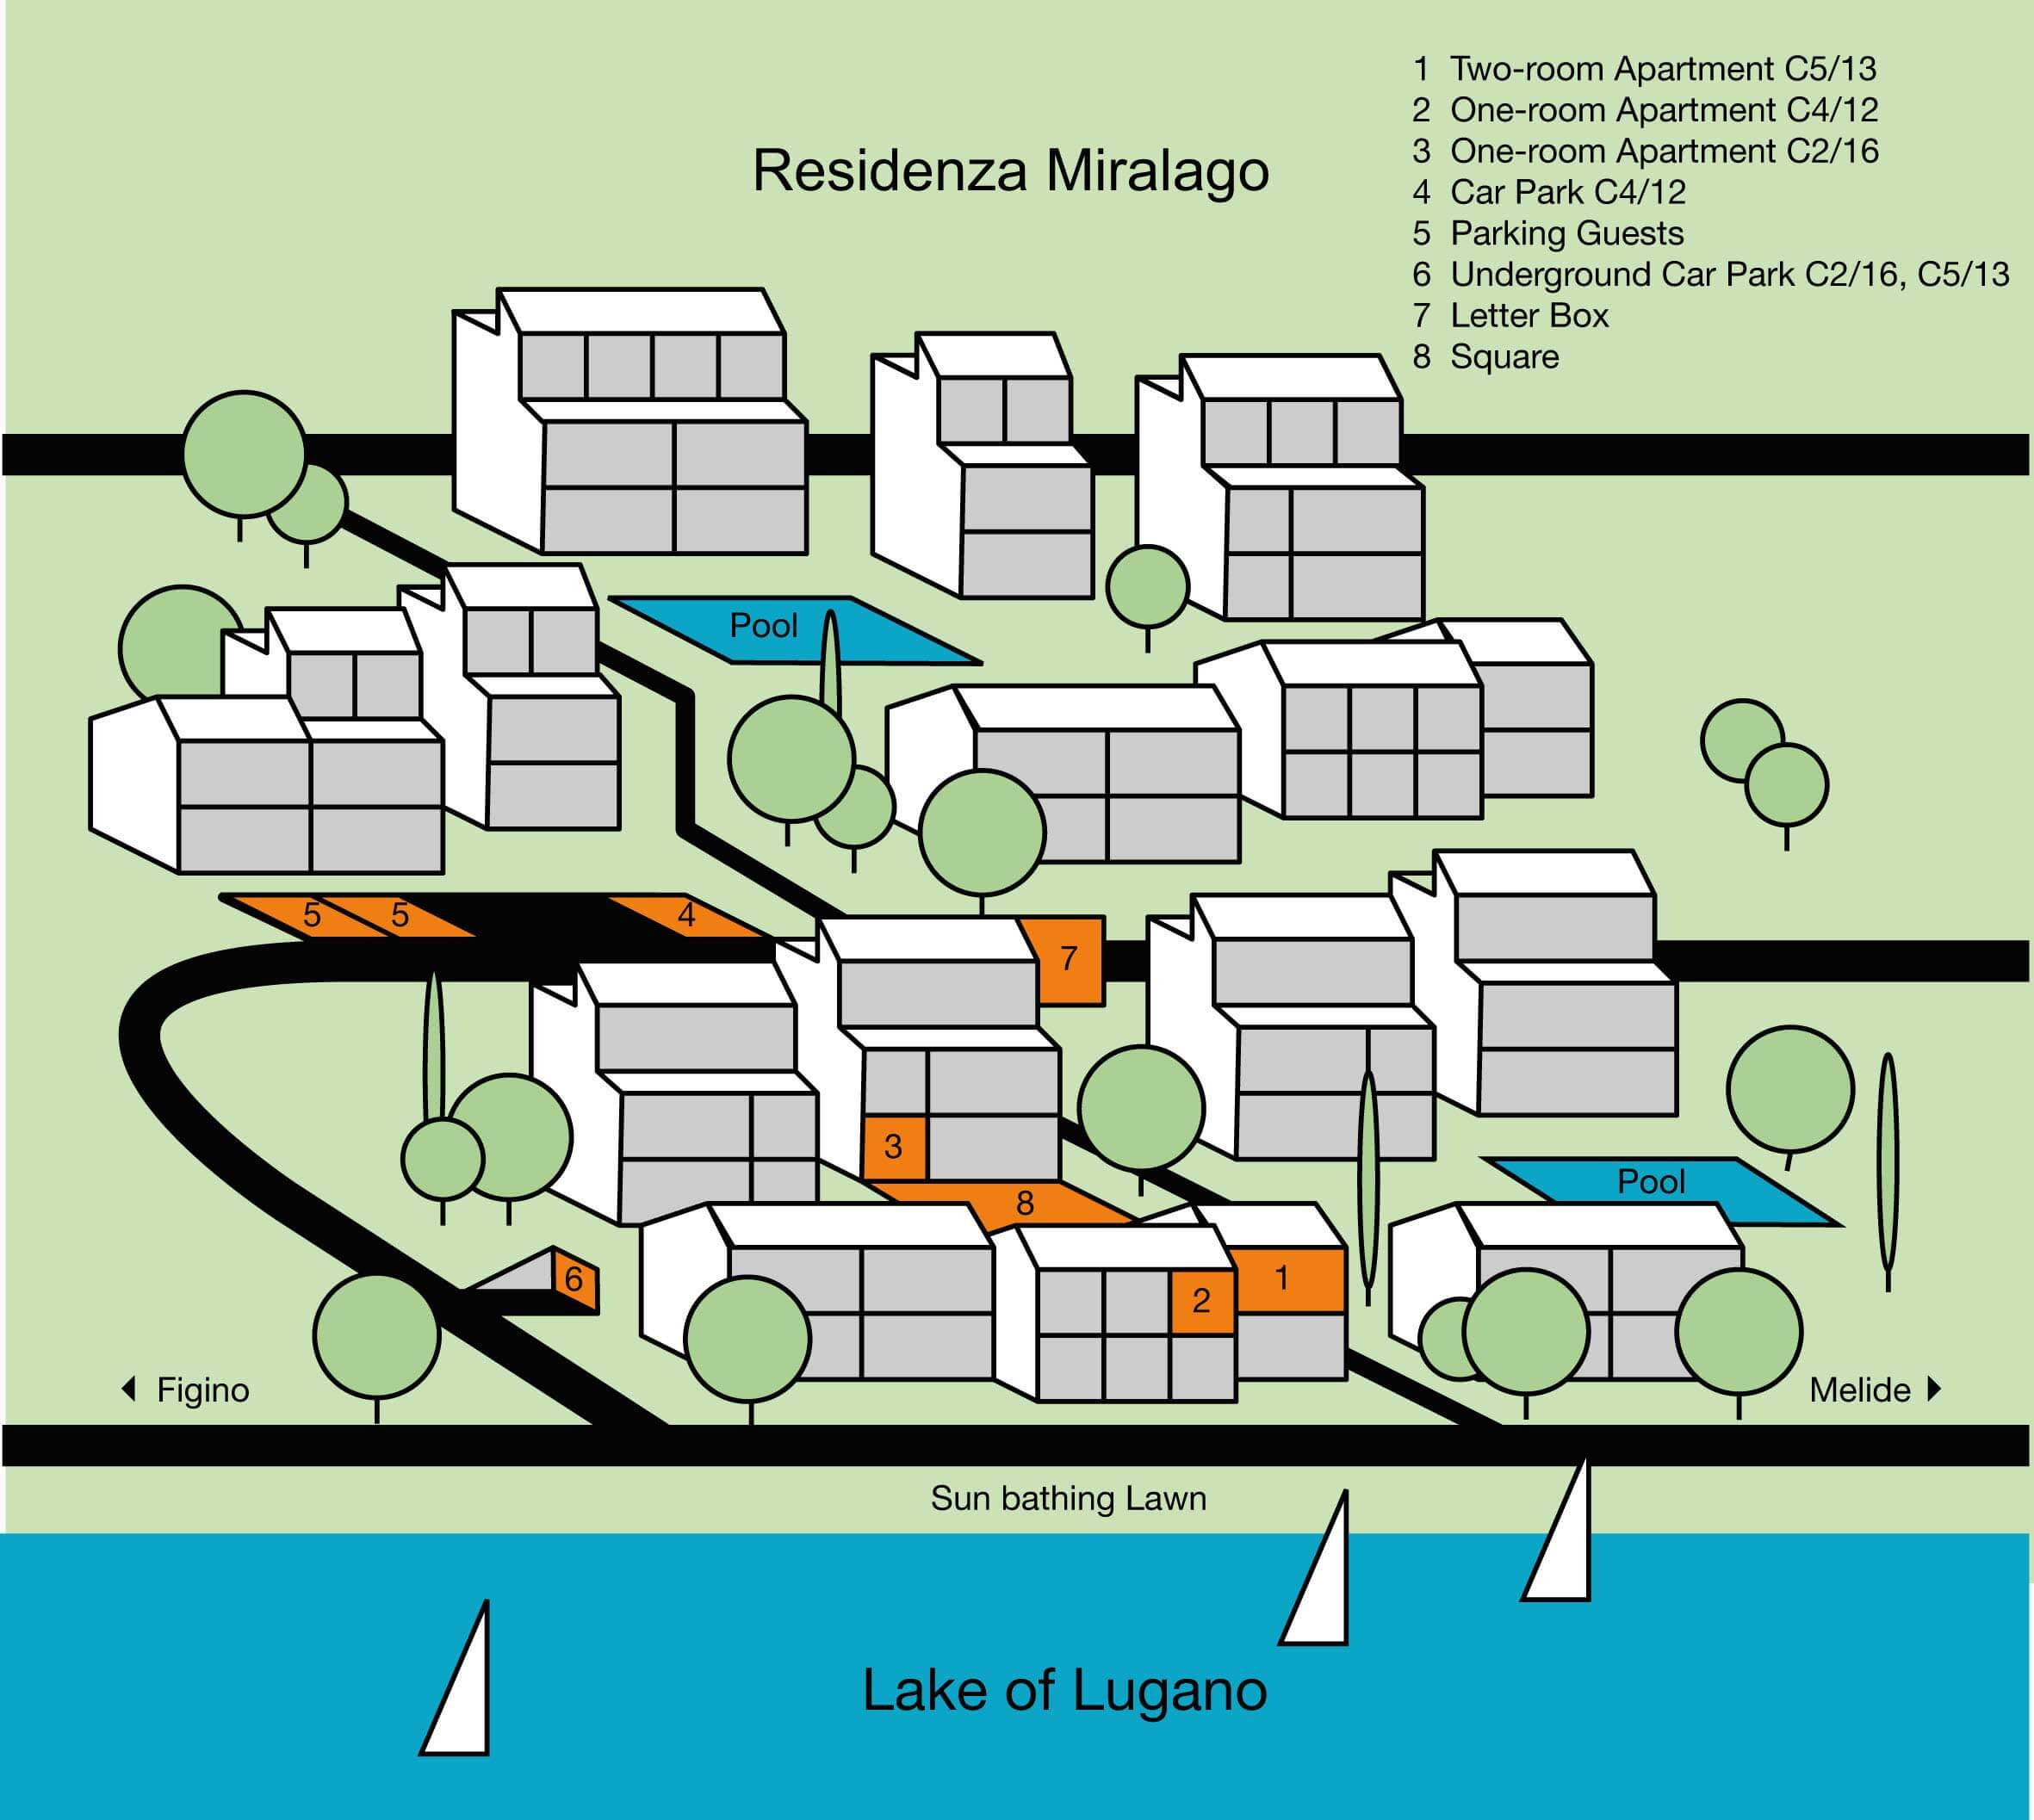 This map shows an overview of the Residenza Miralago